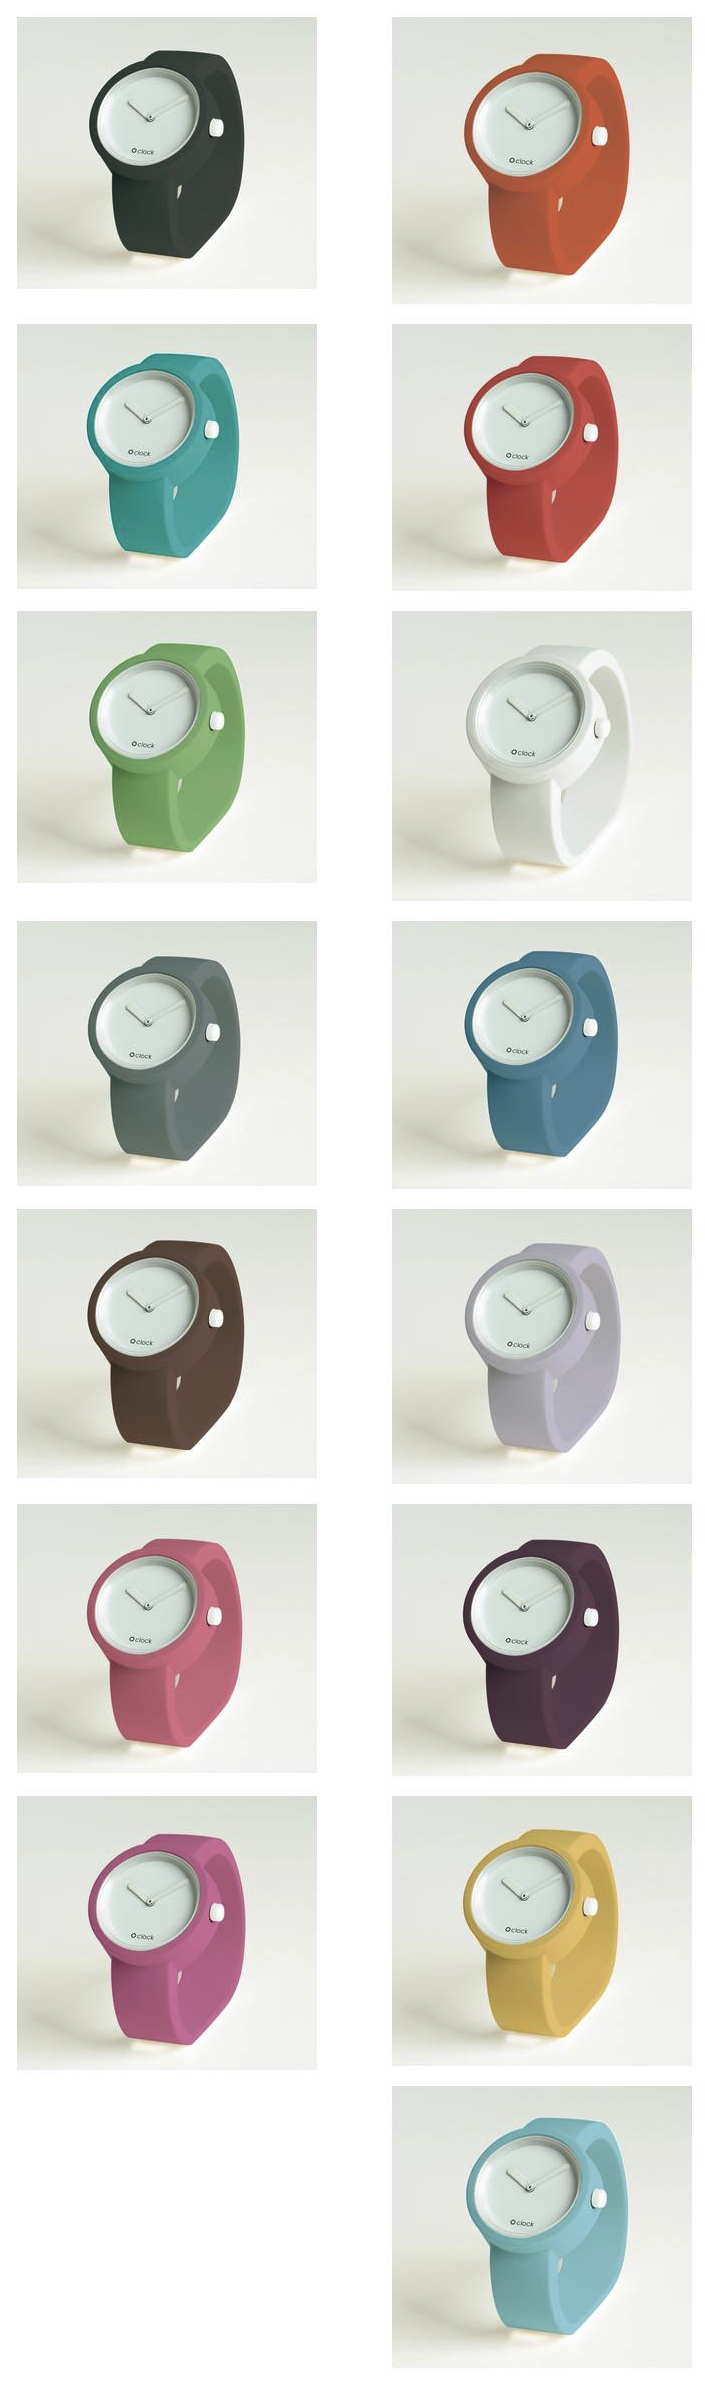 O'CLOCK WATCHES